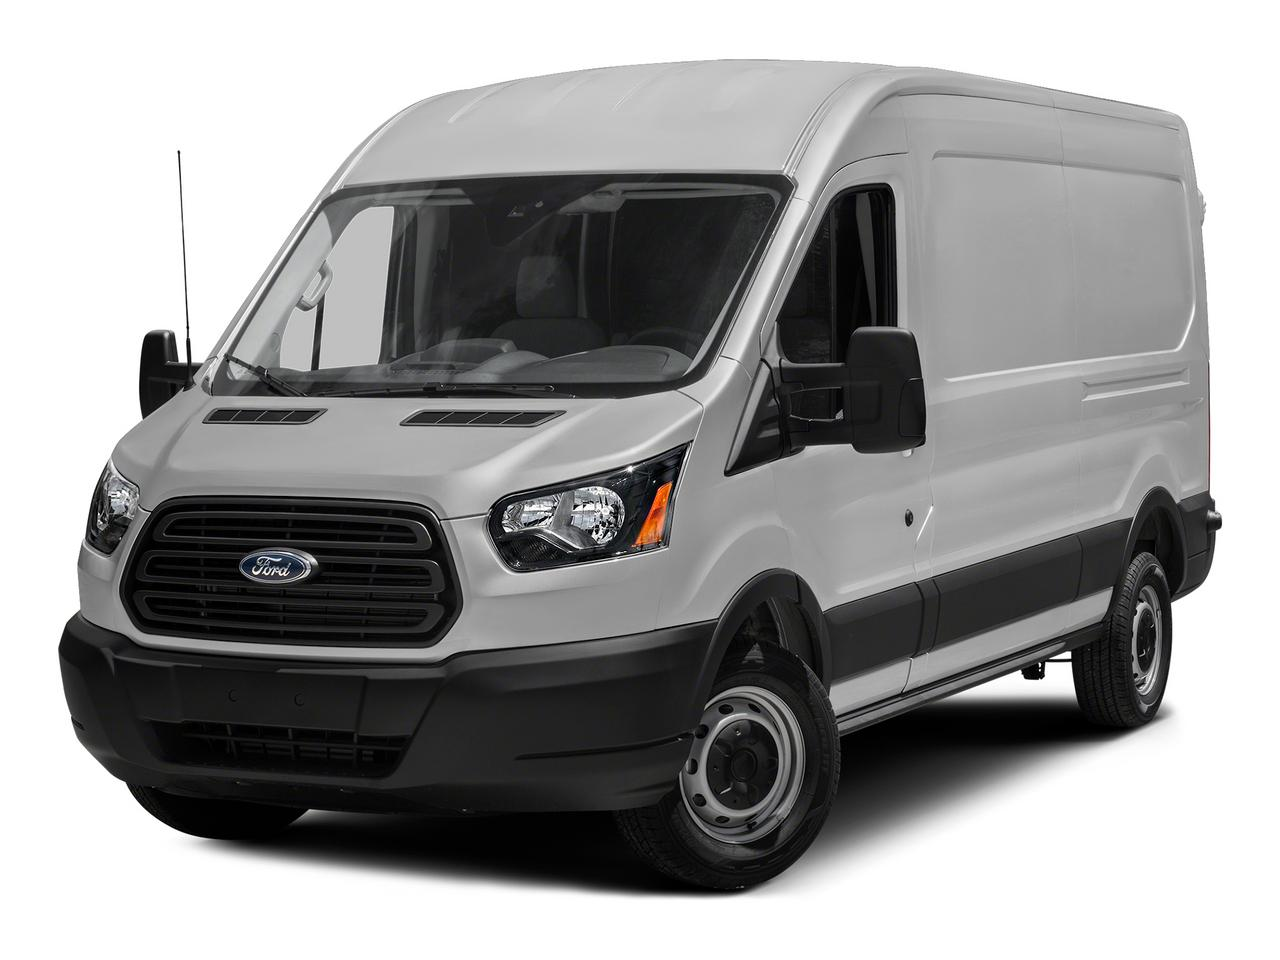 2015 Ford Transit Cargo Van Vehicle Photo in Plainfield, IL 60586